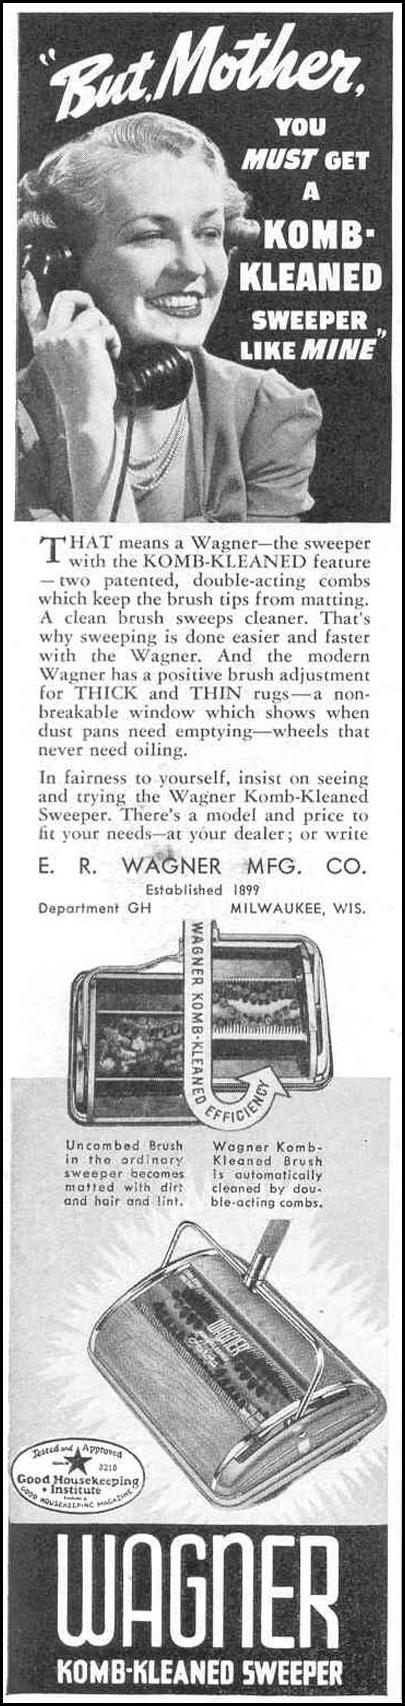 WAGNER KOMB-KLEENED SWEEPER GOOD HOUSEKEEPING 03/01/1940 p. 178